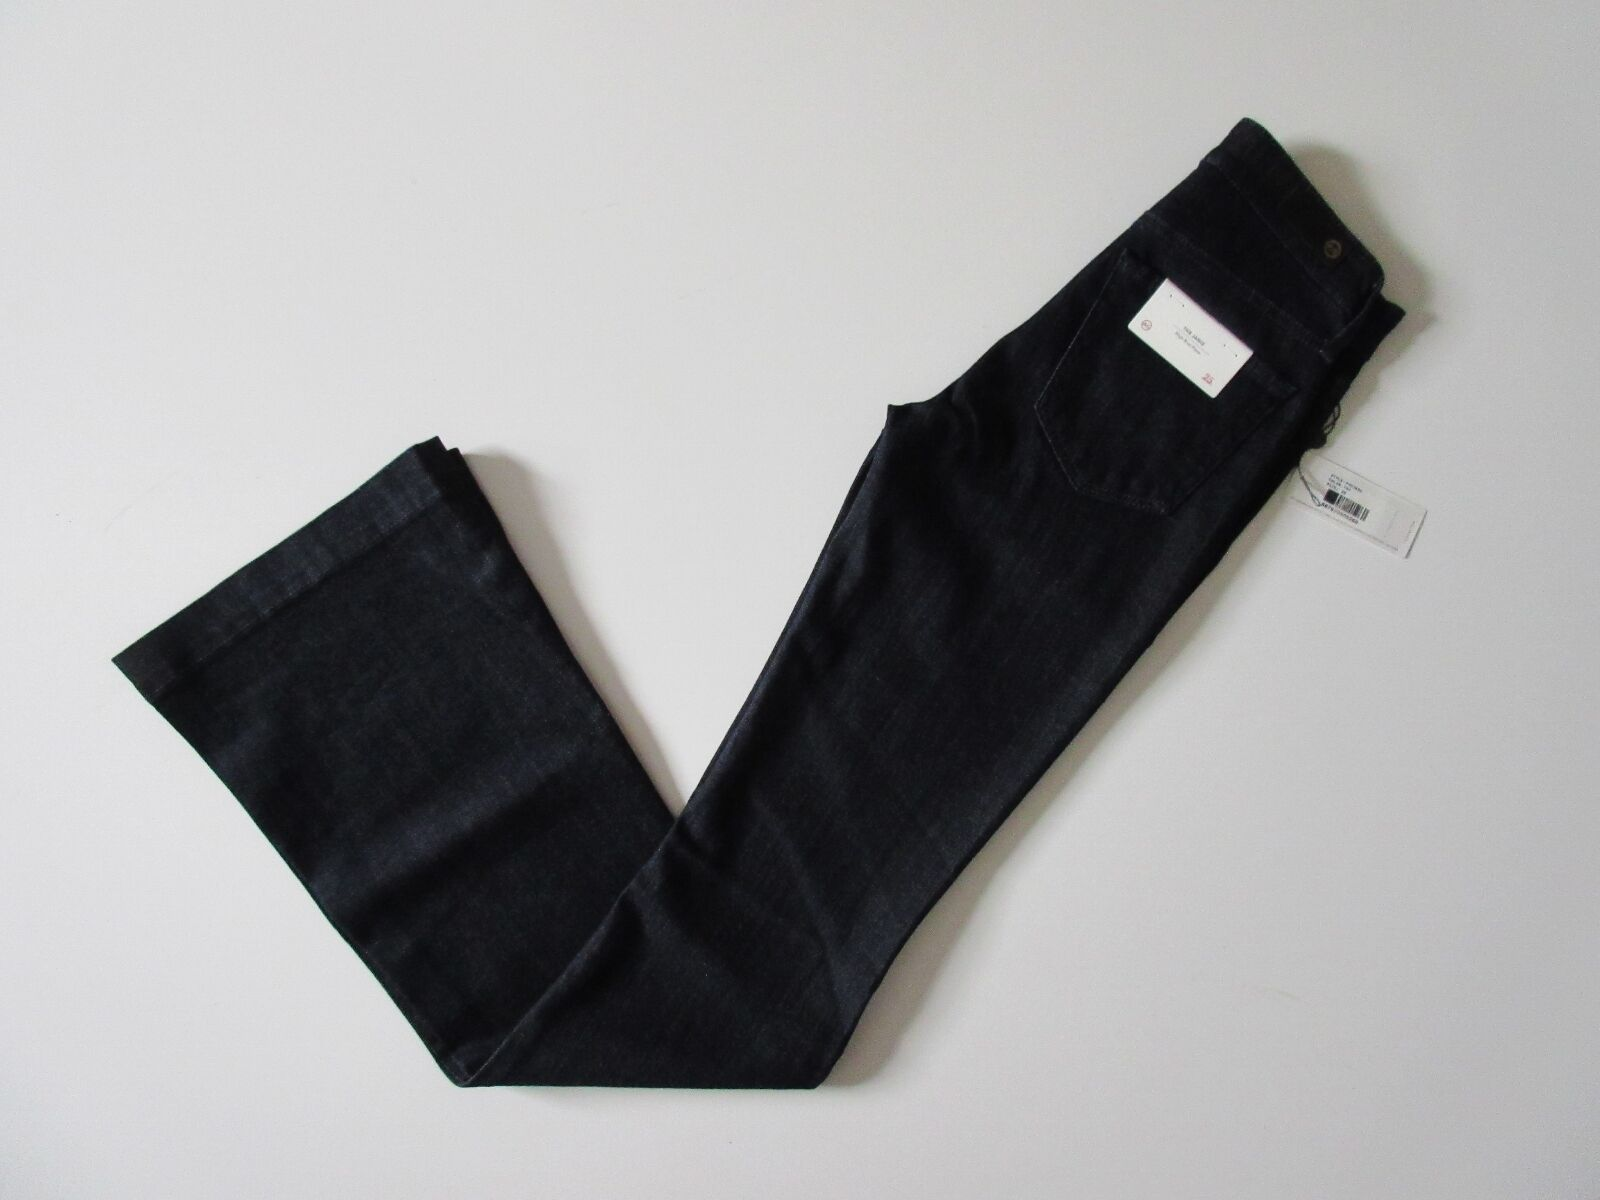 NWT AG Adriano goldschmied Janis in Tonal Society High Rise Flare Jean 25 x 35 ½